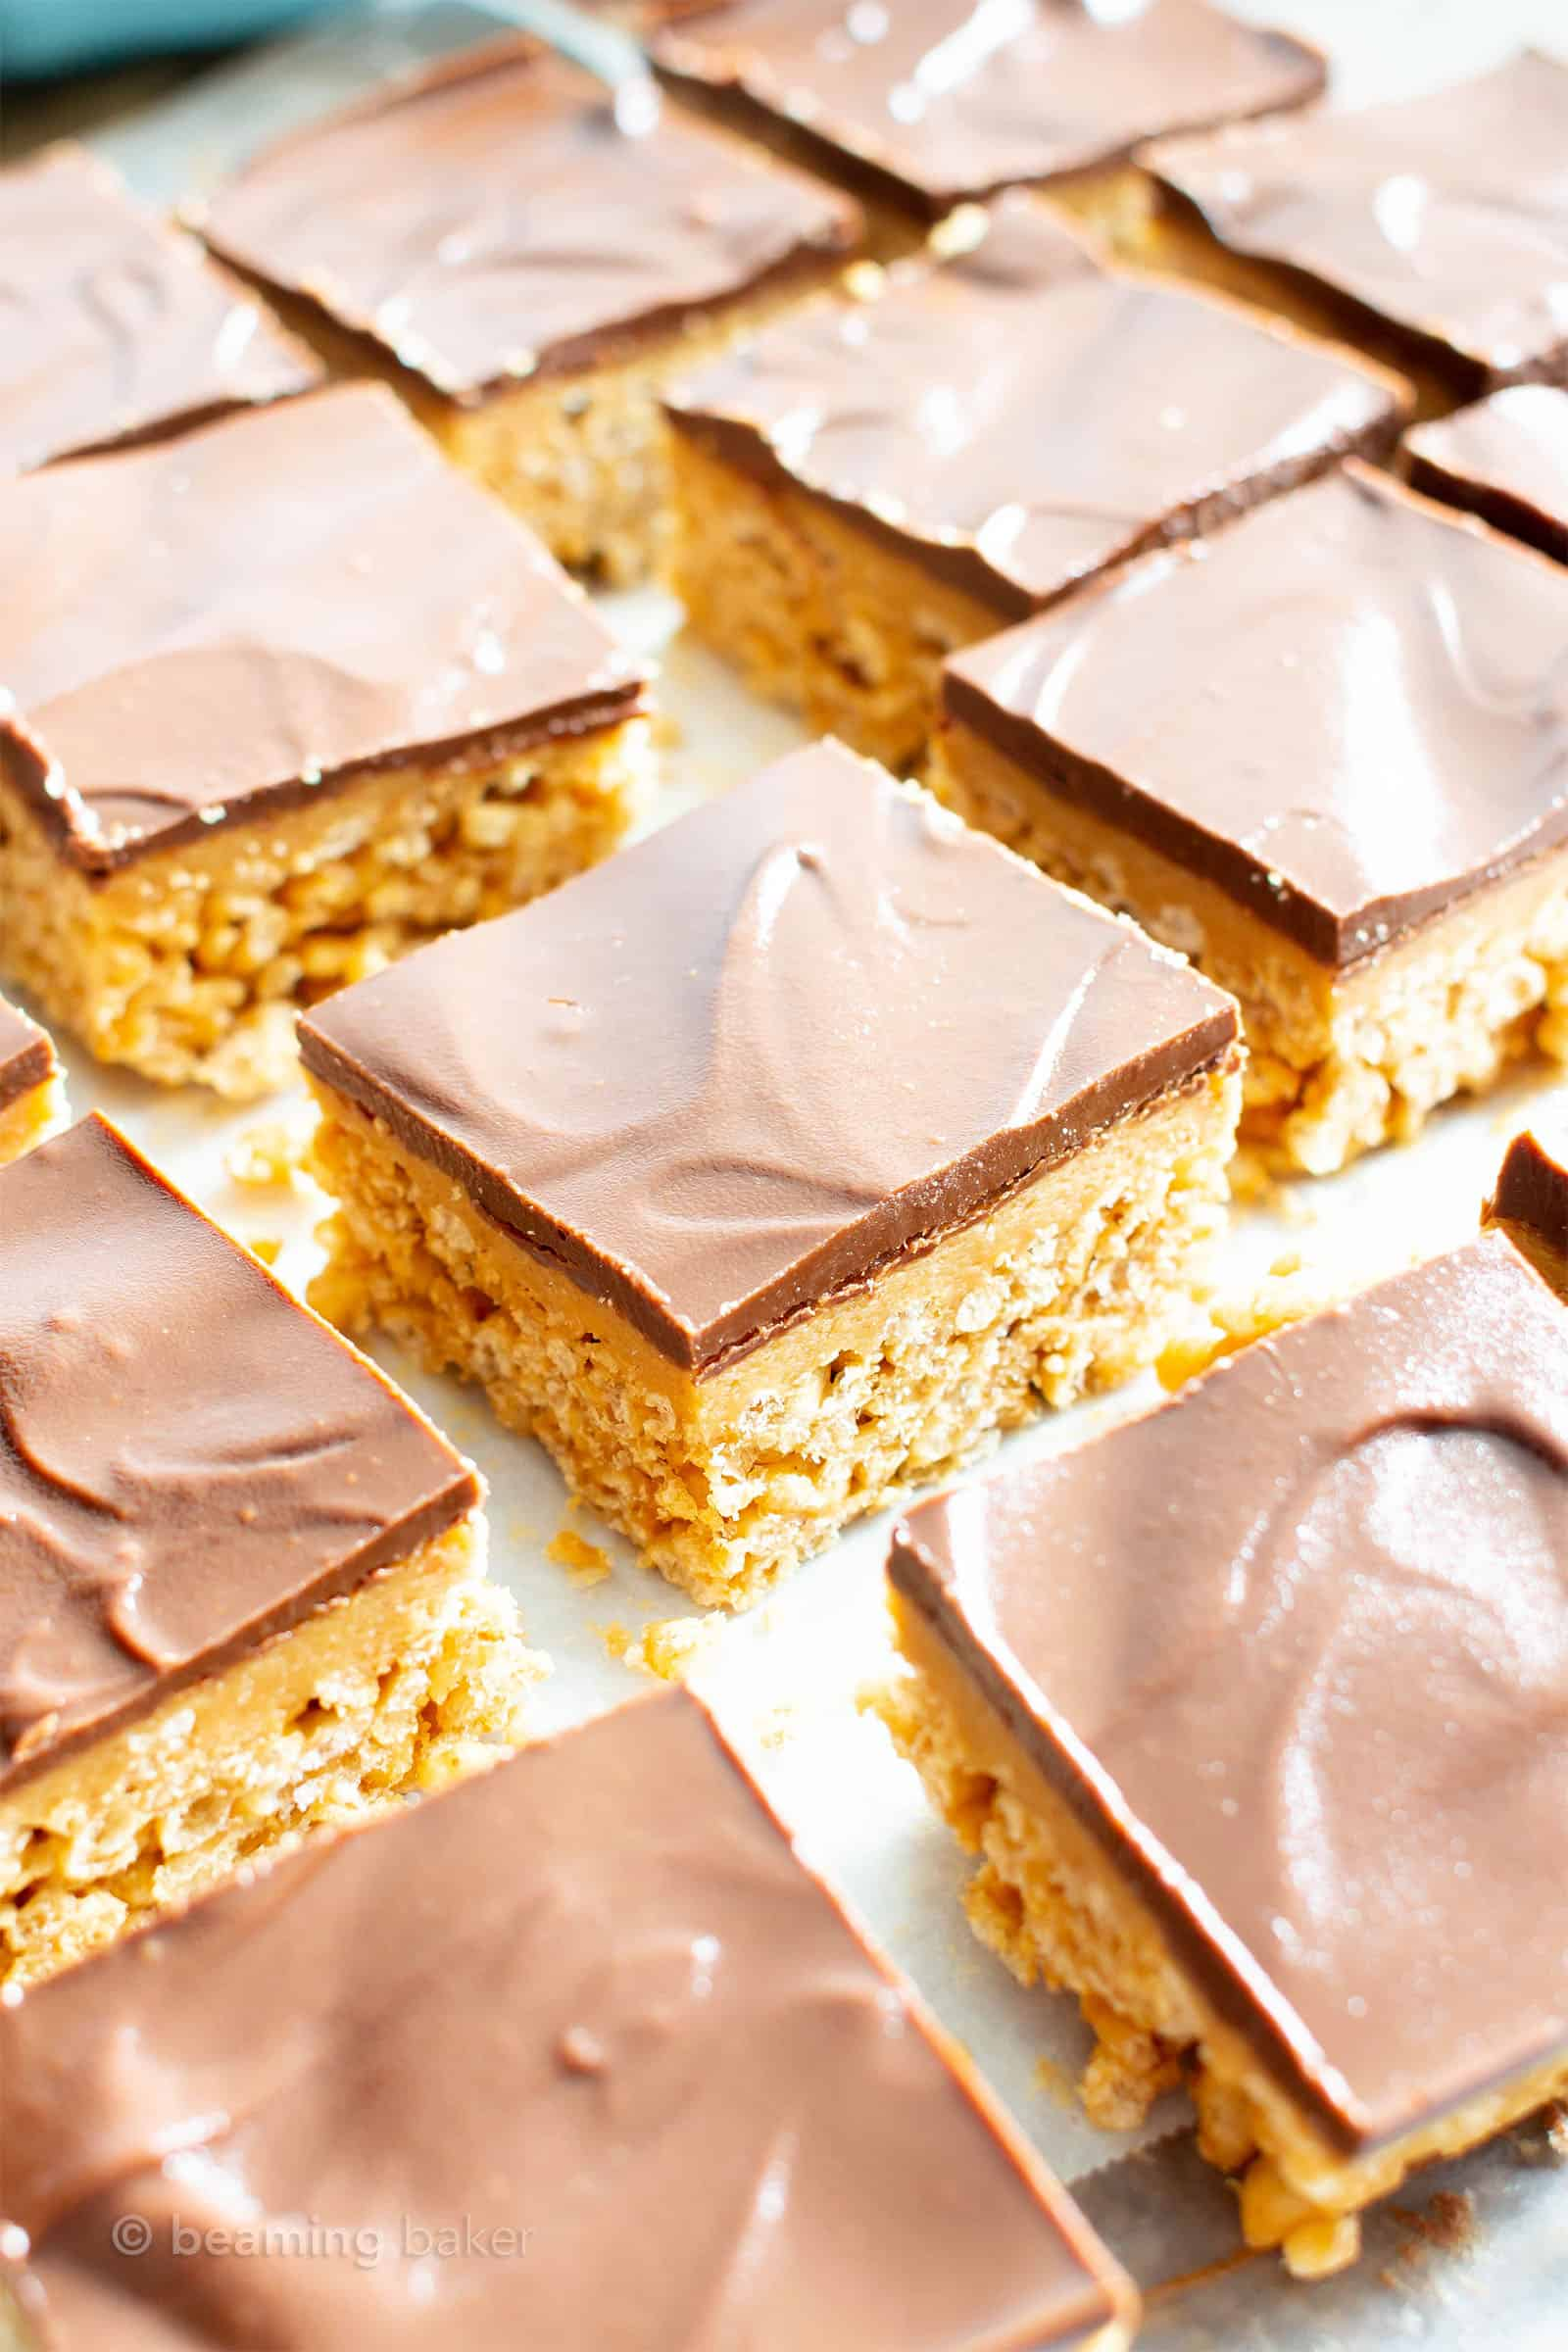 peanut butter rice crispy treats in a single layer with space in between each treat